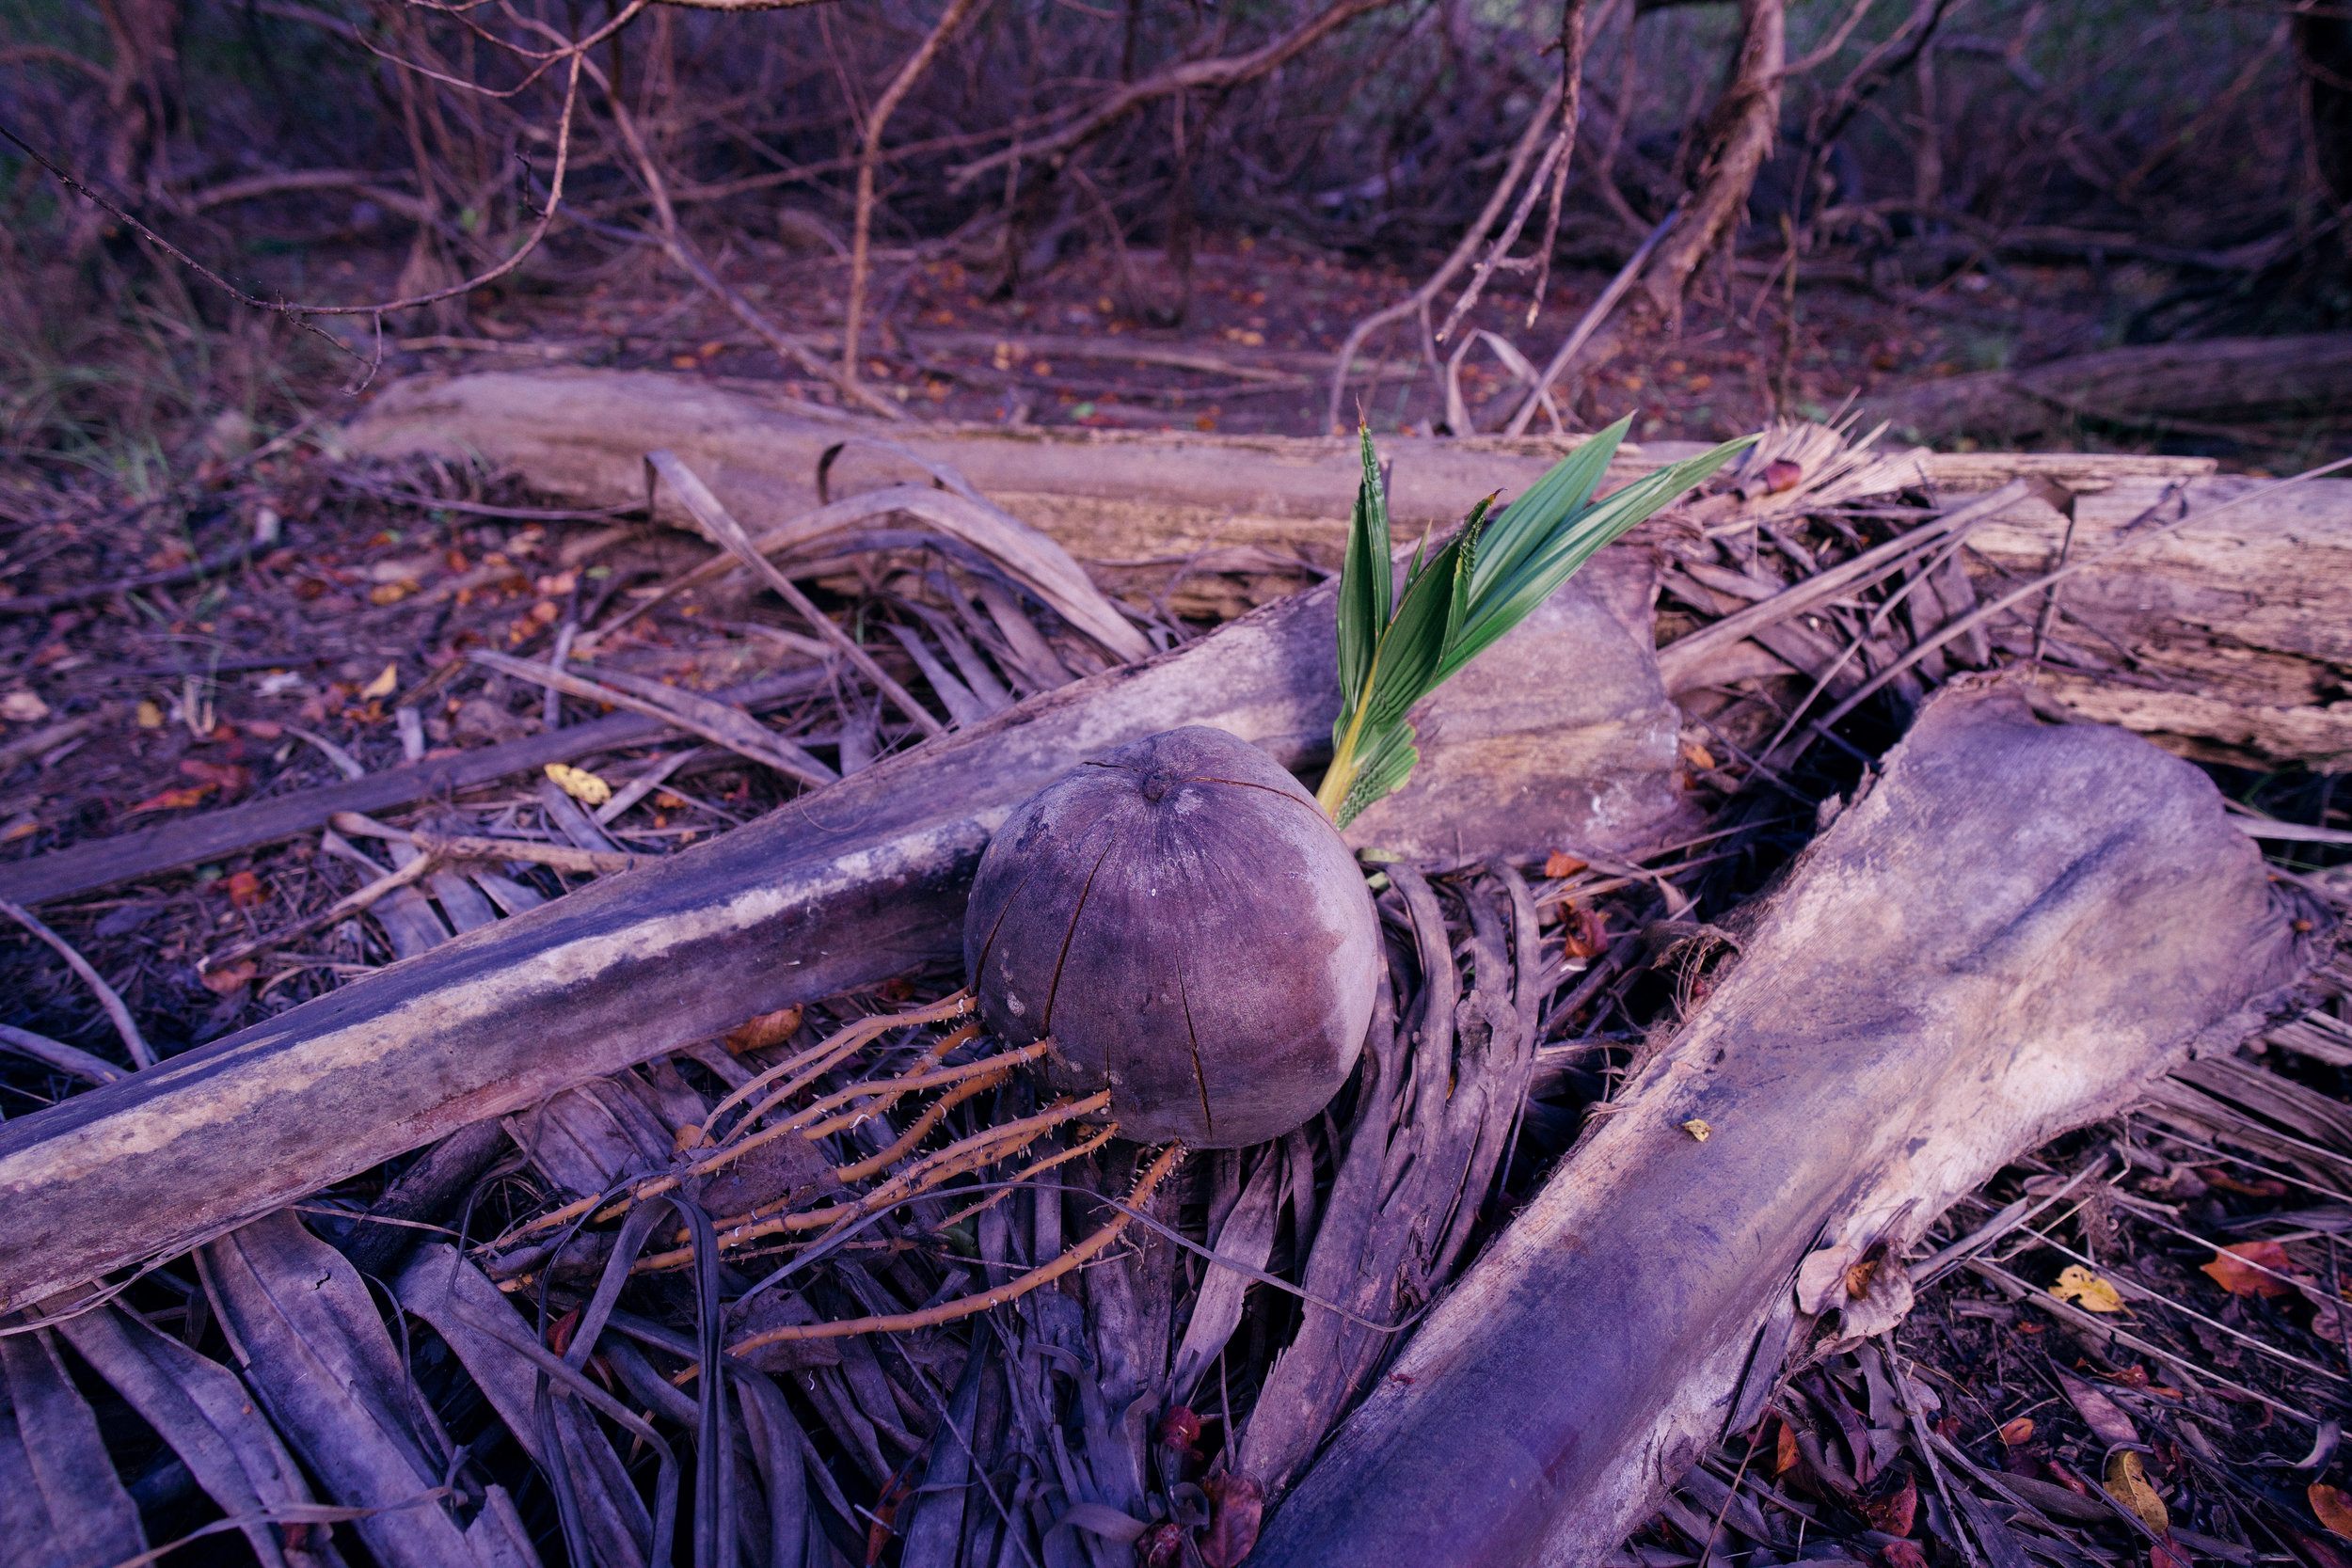 An uprooted coconut that was starting to grow